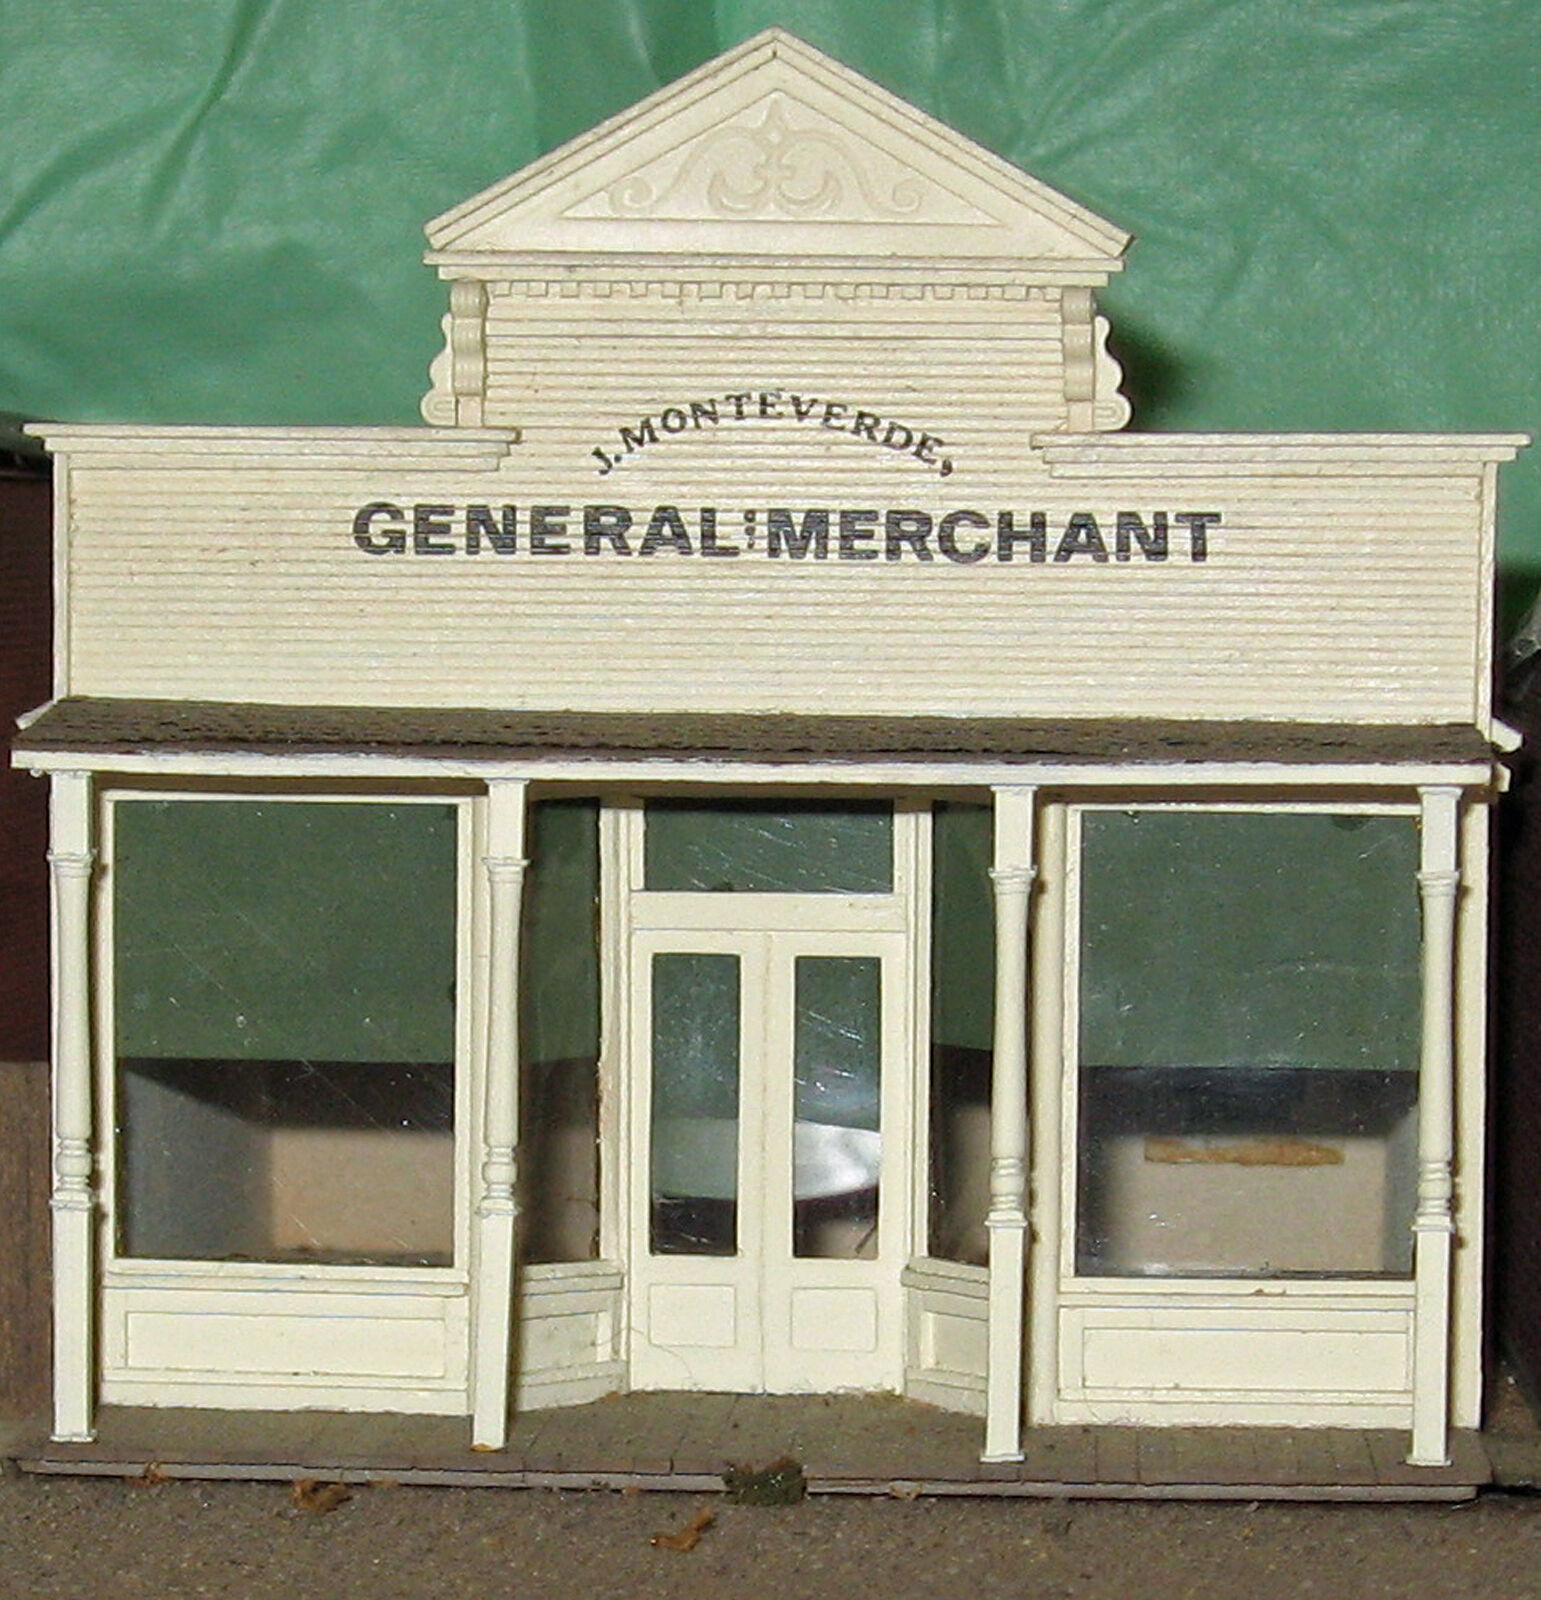 GENERAL GENERAL GENERAL STORE HO modello Railstrada Structure Unpainted Craftsuomo Wood Kit CM38904 a7a477